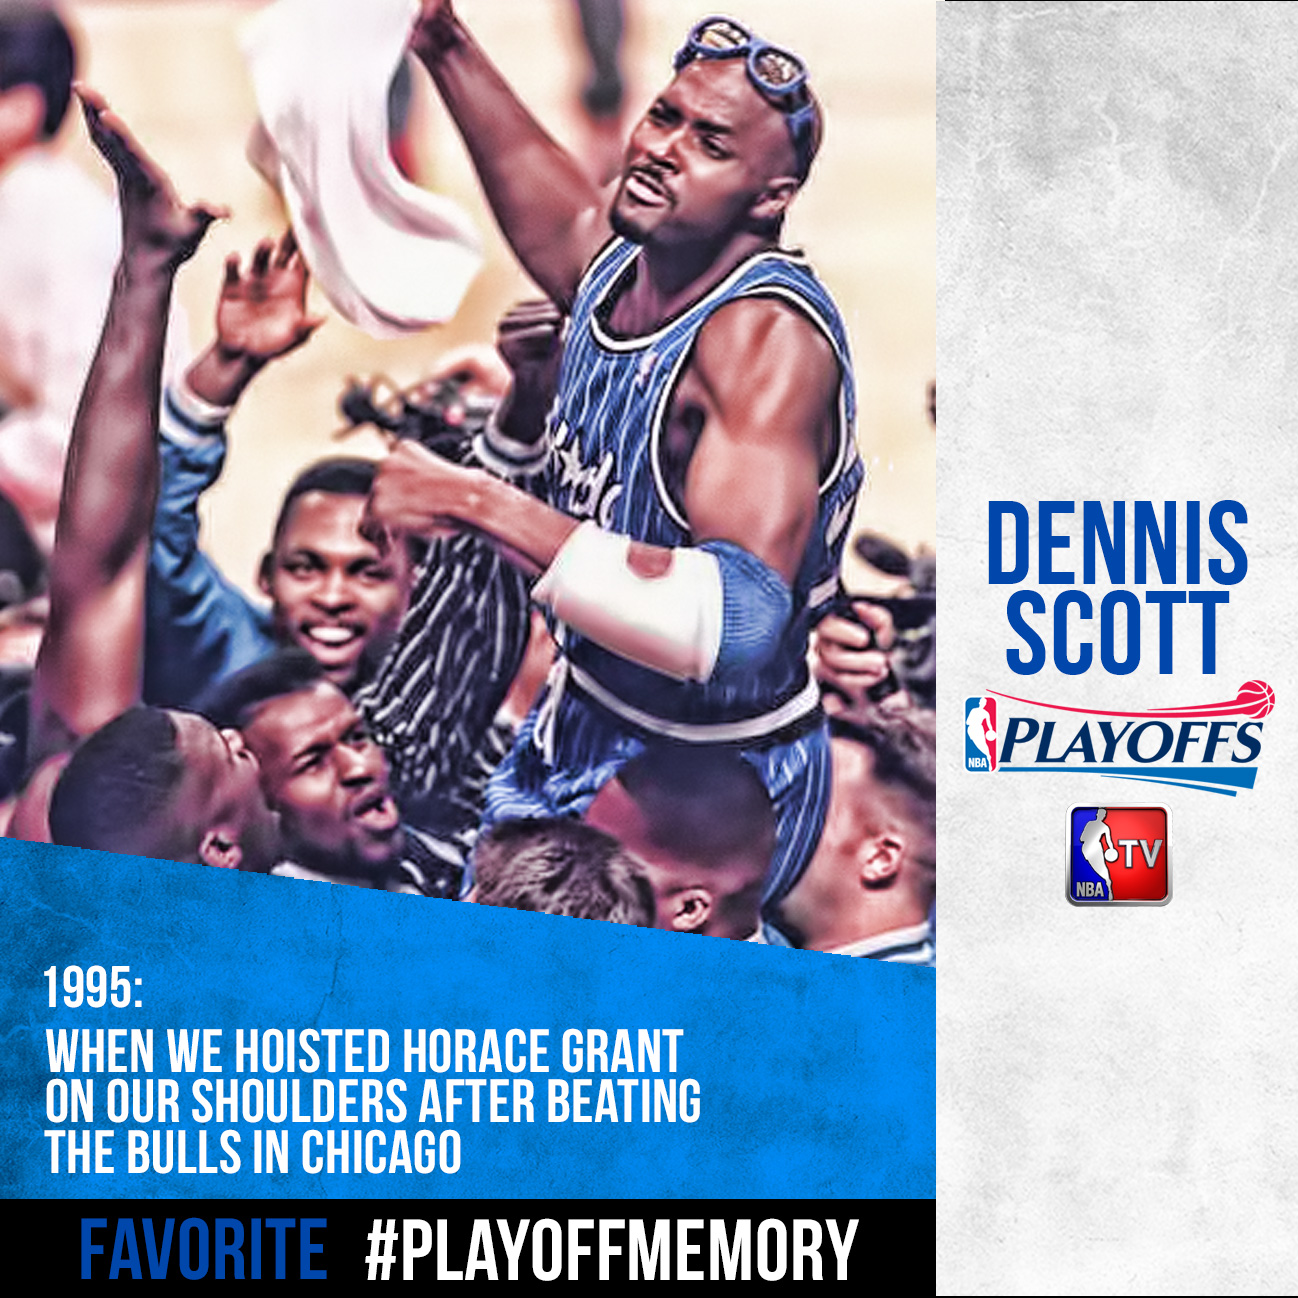 Dennis Scott - #PlayoffMemory